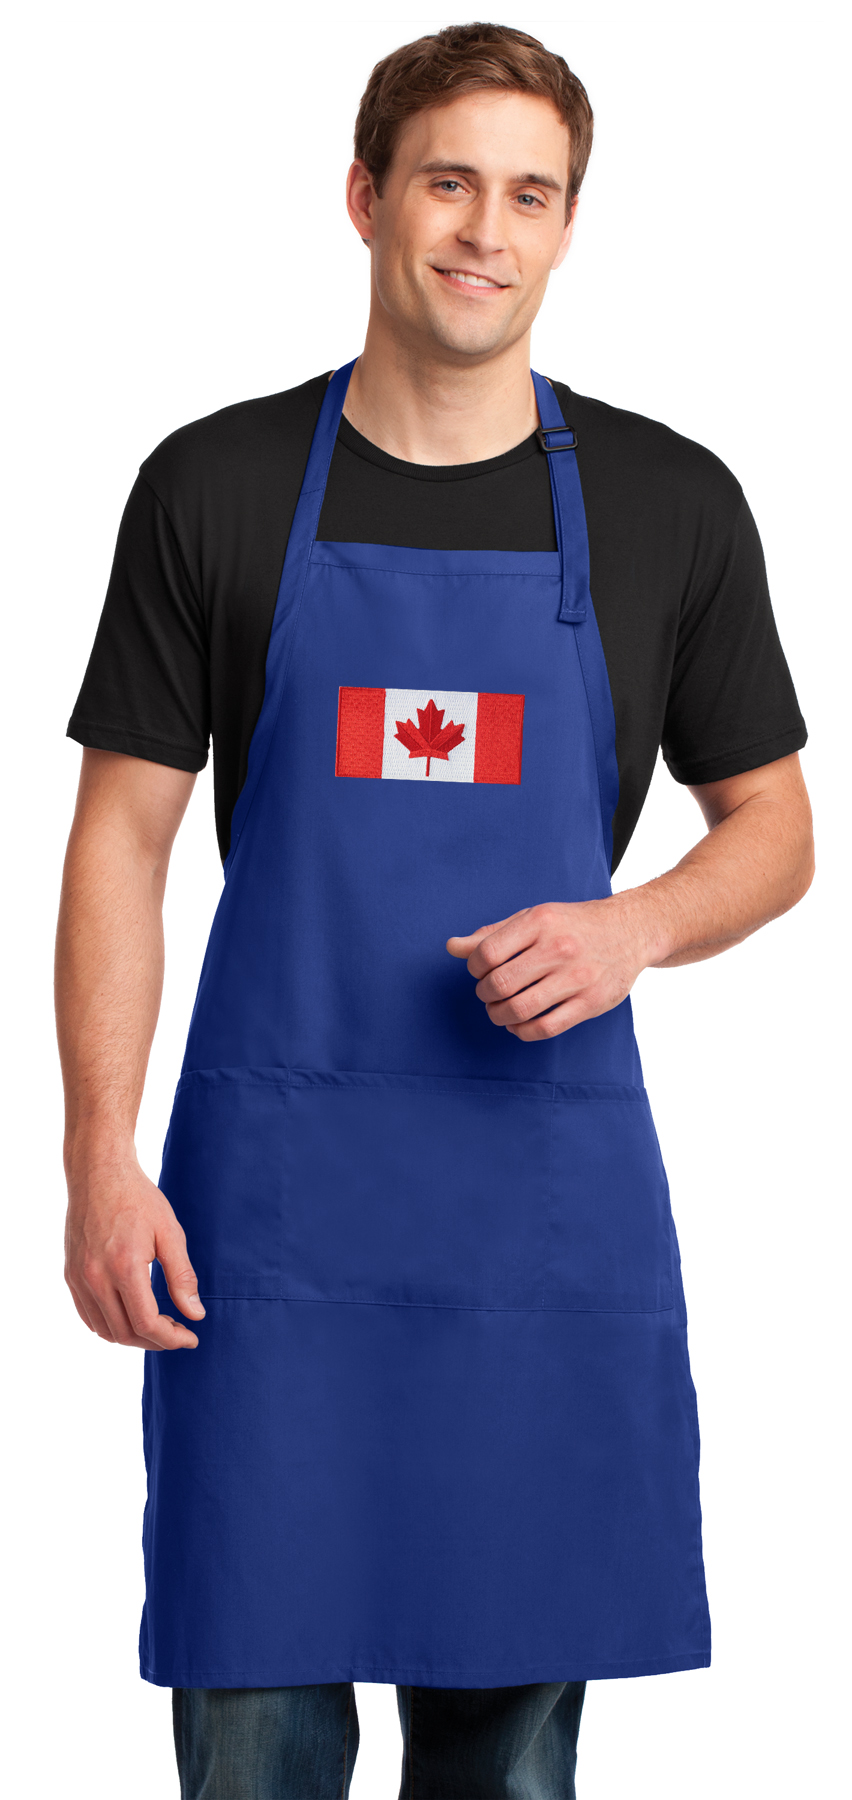 Large Canada Flag Apron Deluxe Canadian Flag Aprons for Women or Men